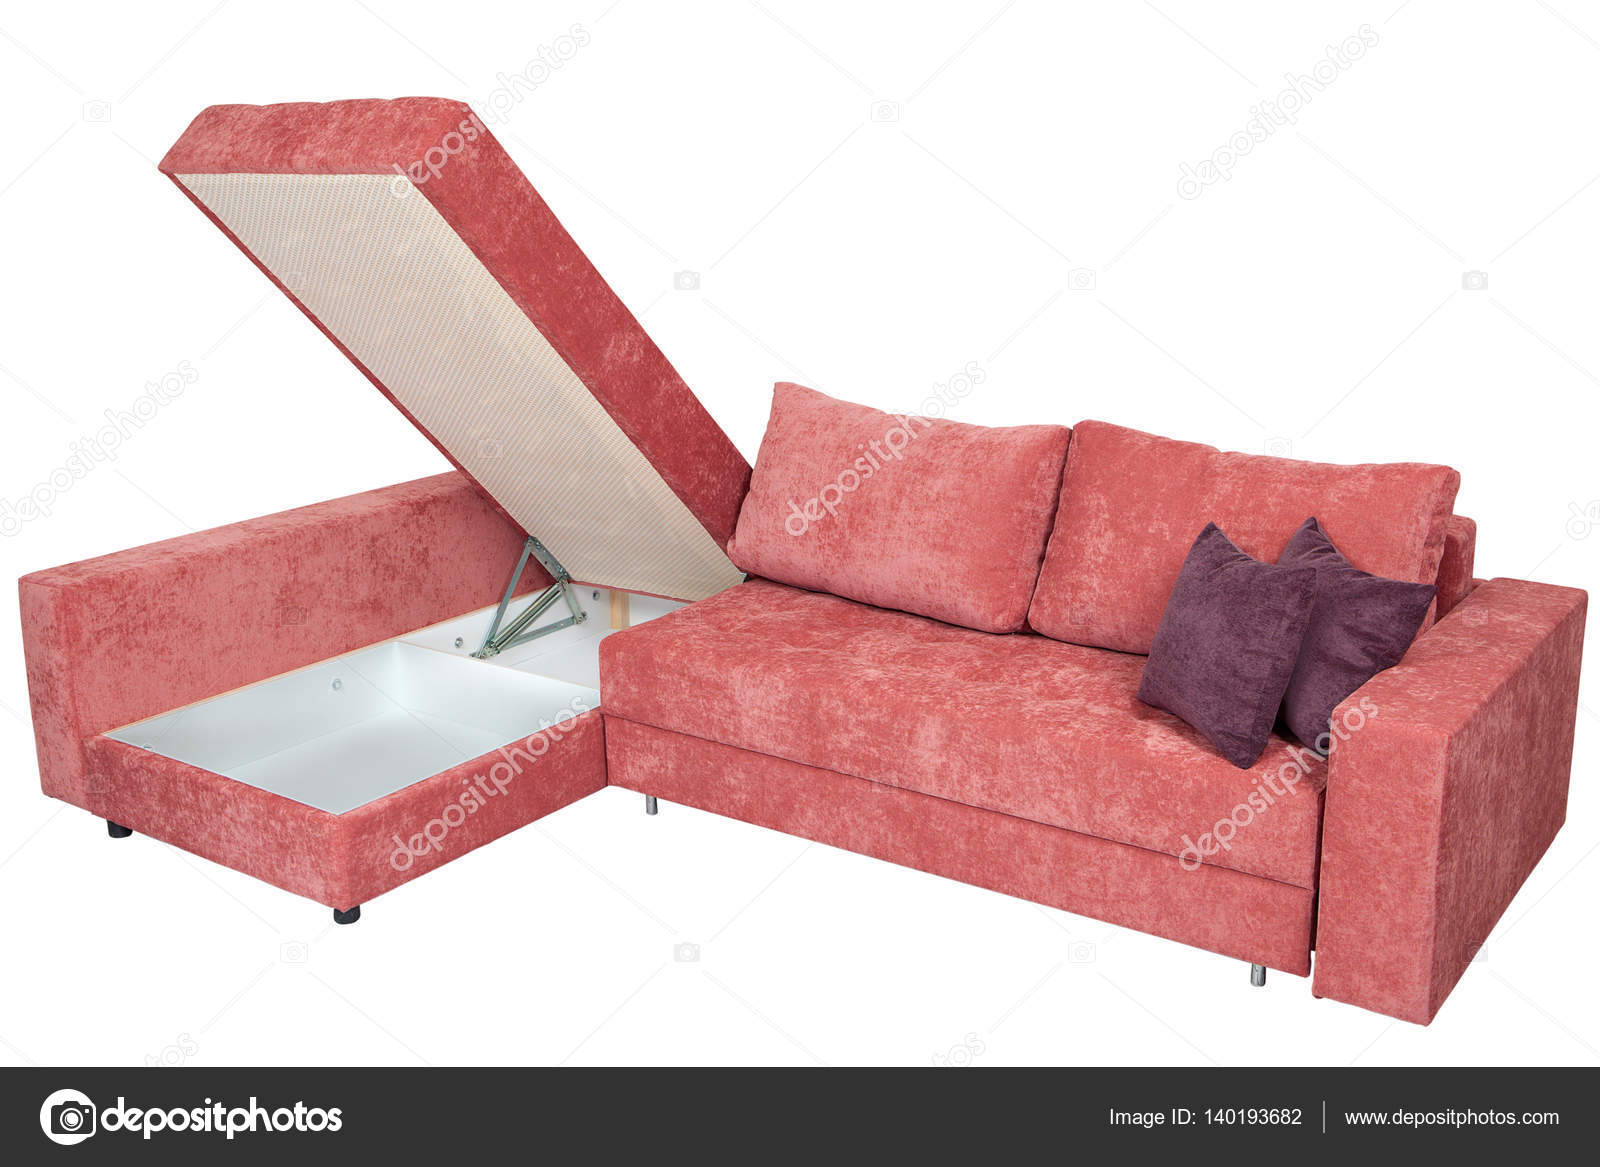 Stupendous Corner Sofa Bed Of Pink With Storage System Isolated On Caraccident5 Cool Chair Designs And Ideas Caraccident5Info